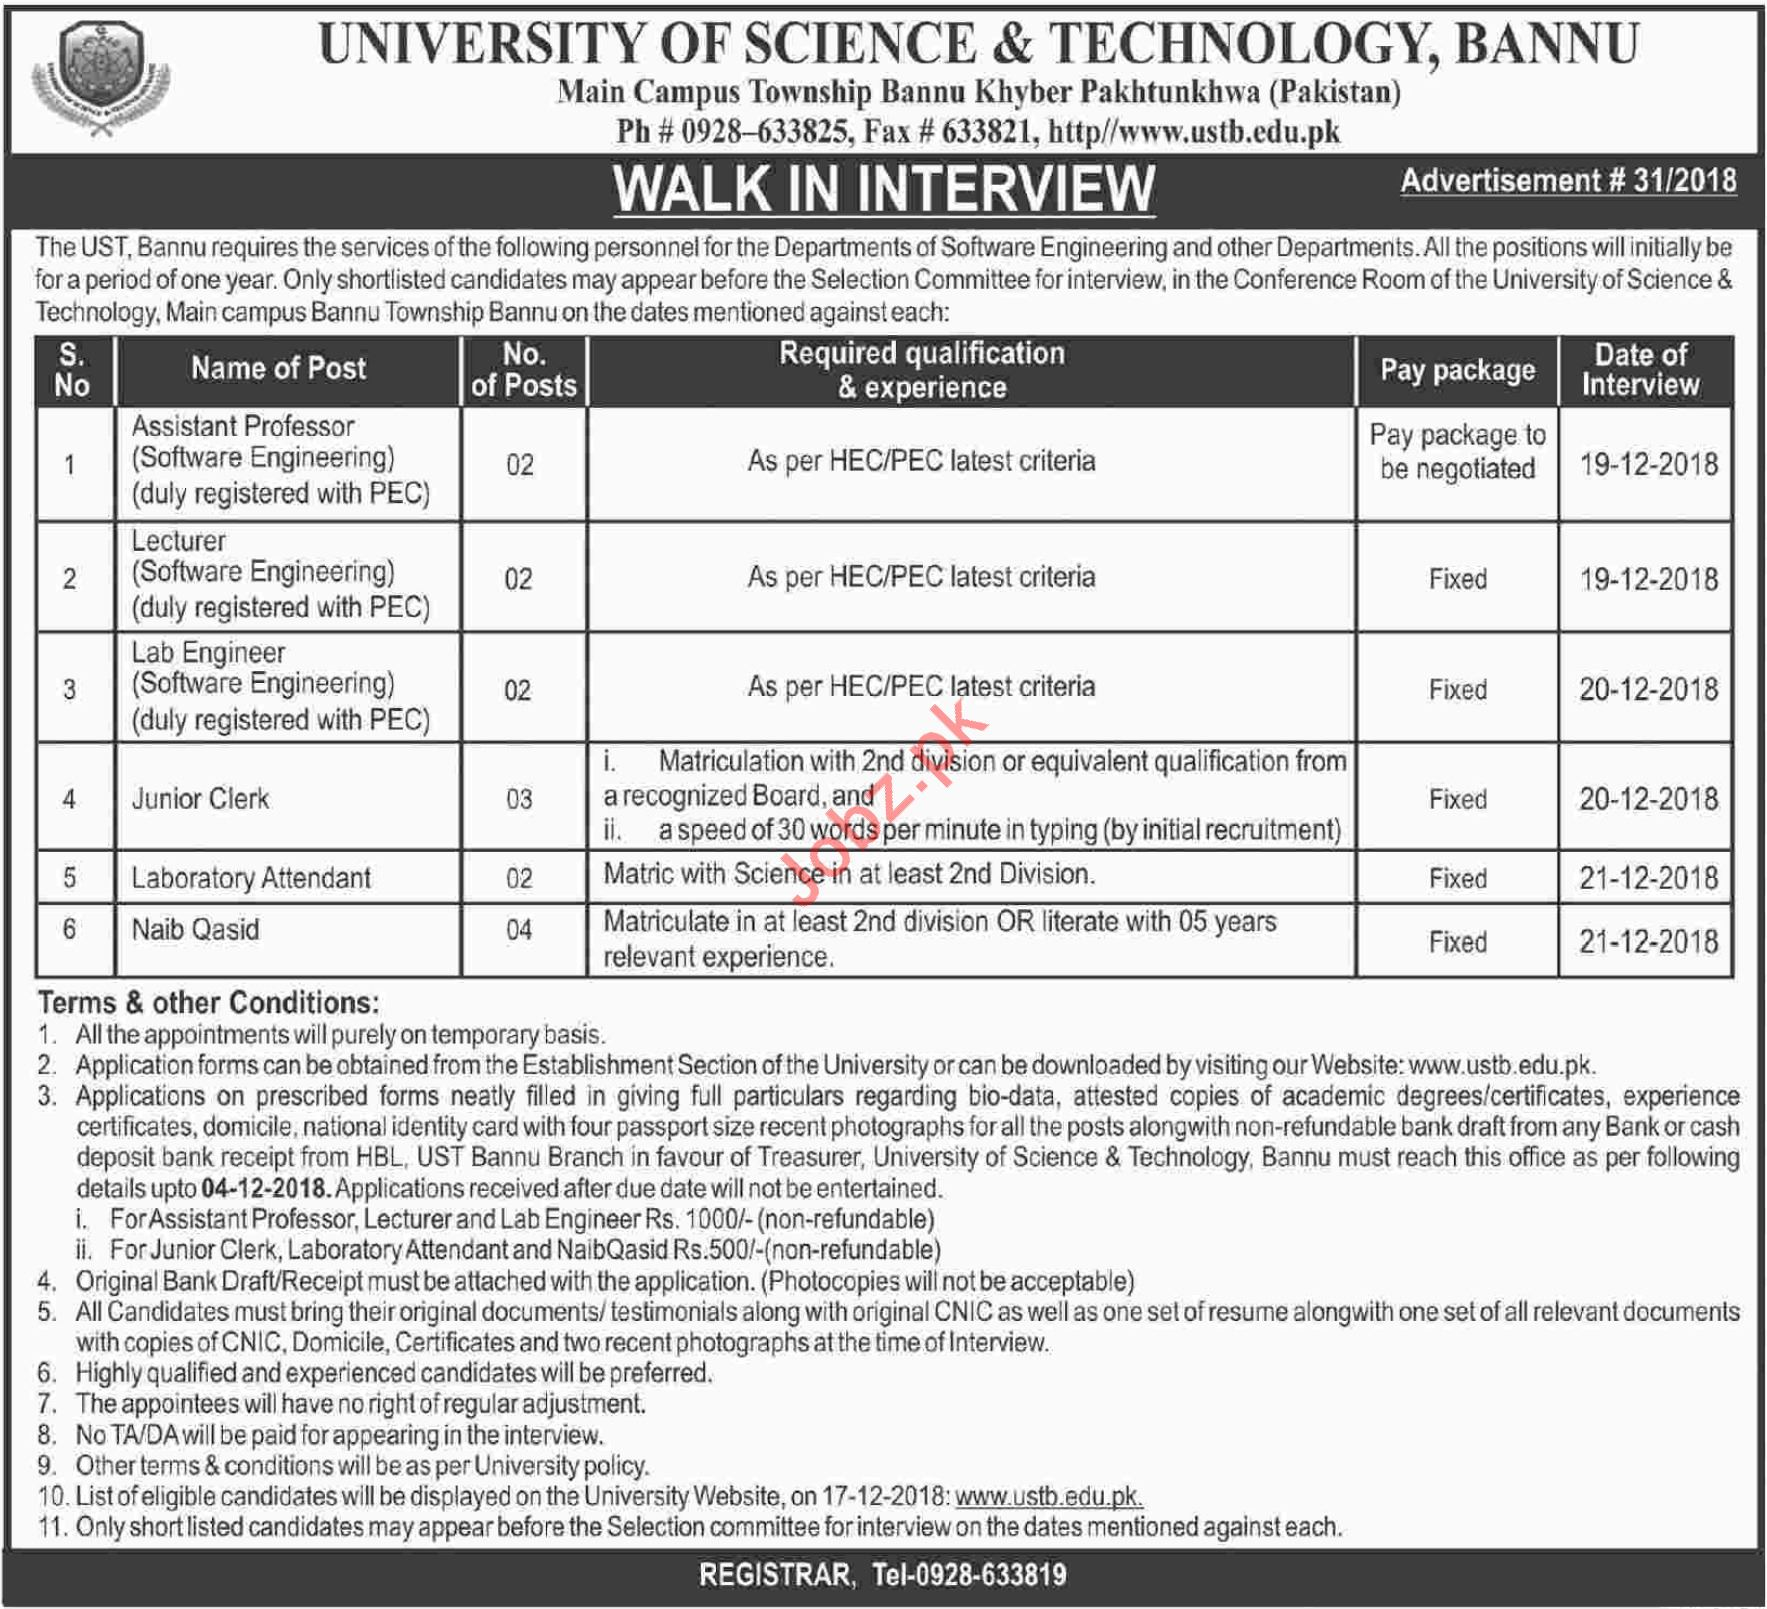 University of Science & Technology Bannu UST Jobs Interview